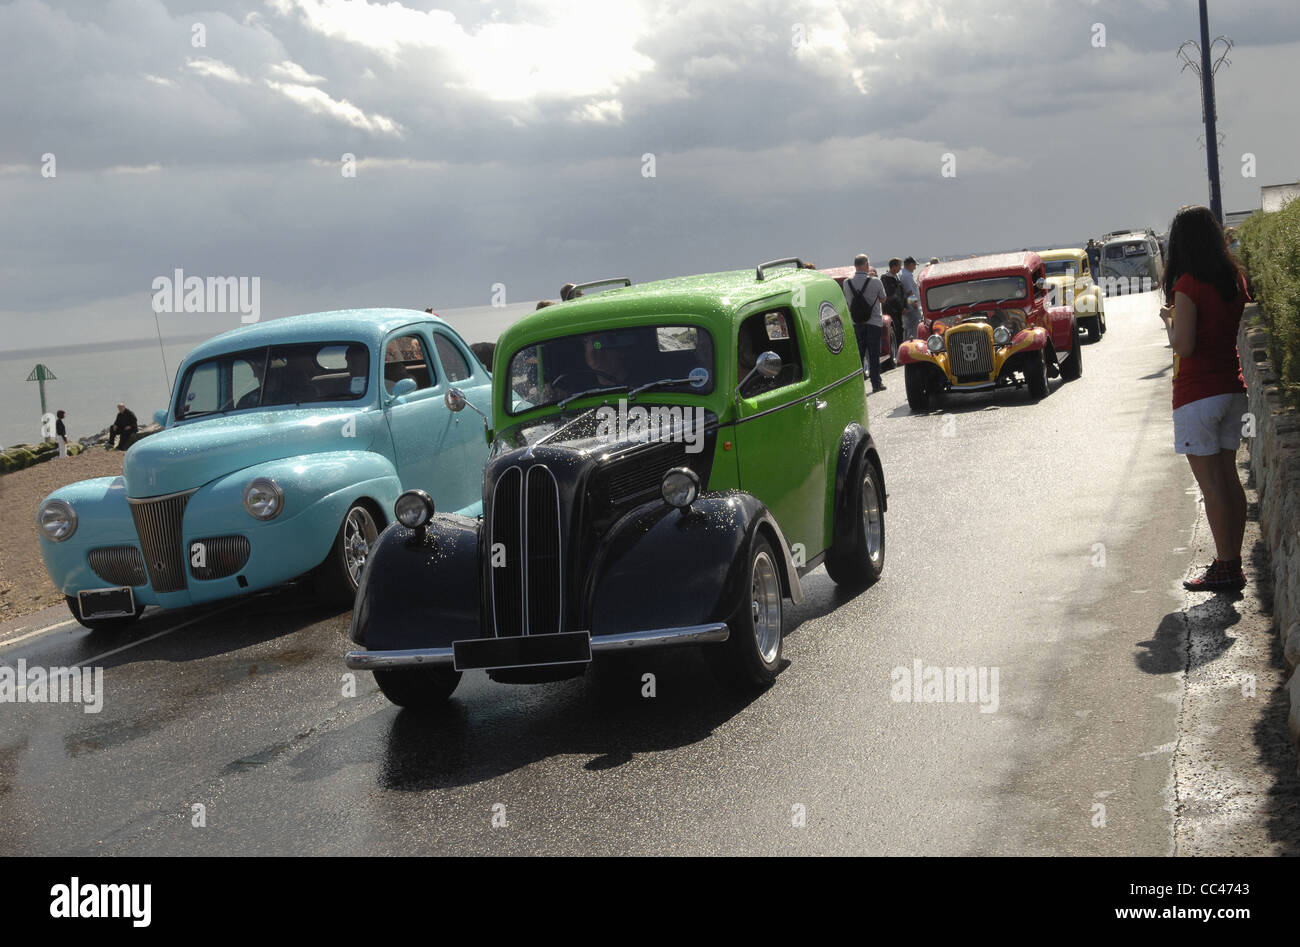 Classic Cars Cruise Along The Seafront At Folkestone During The